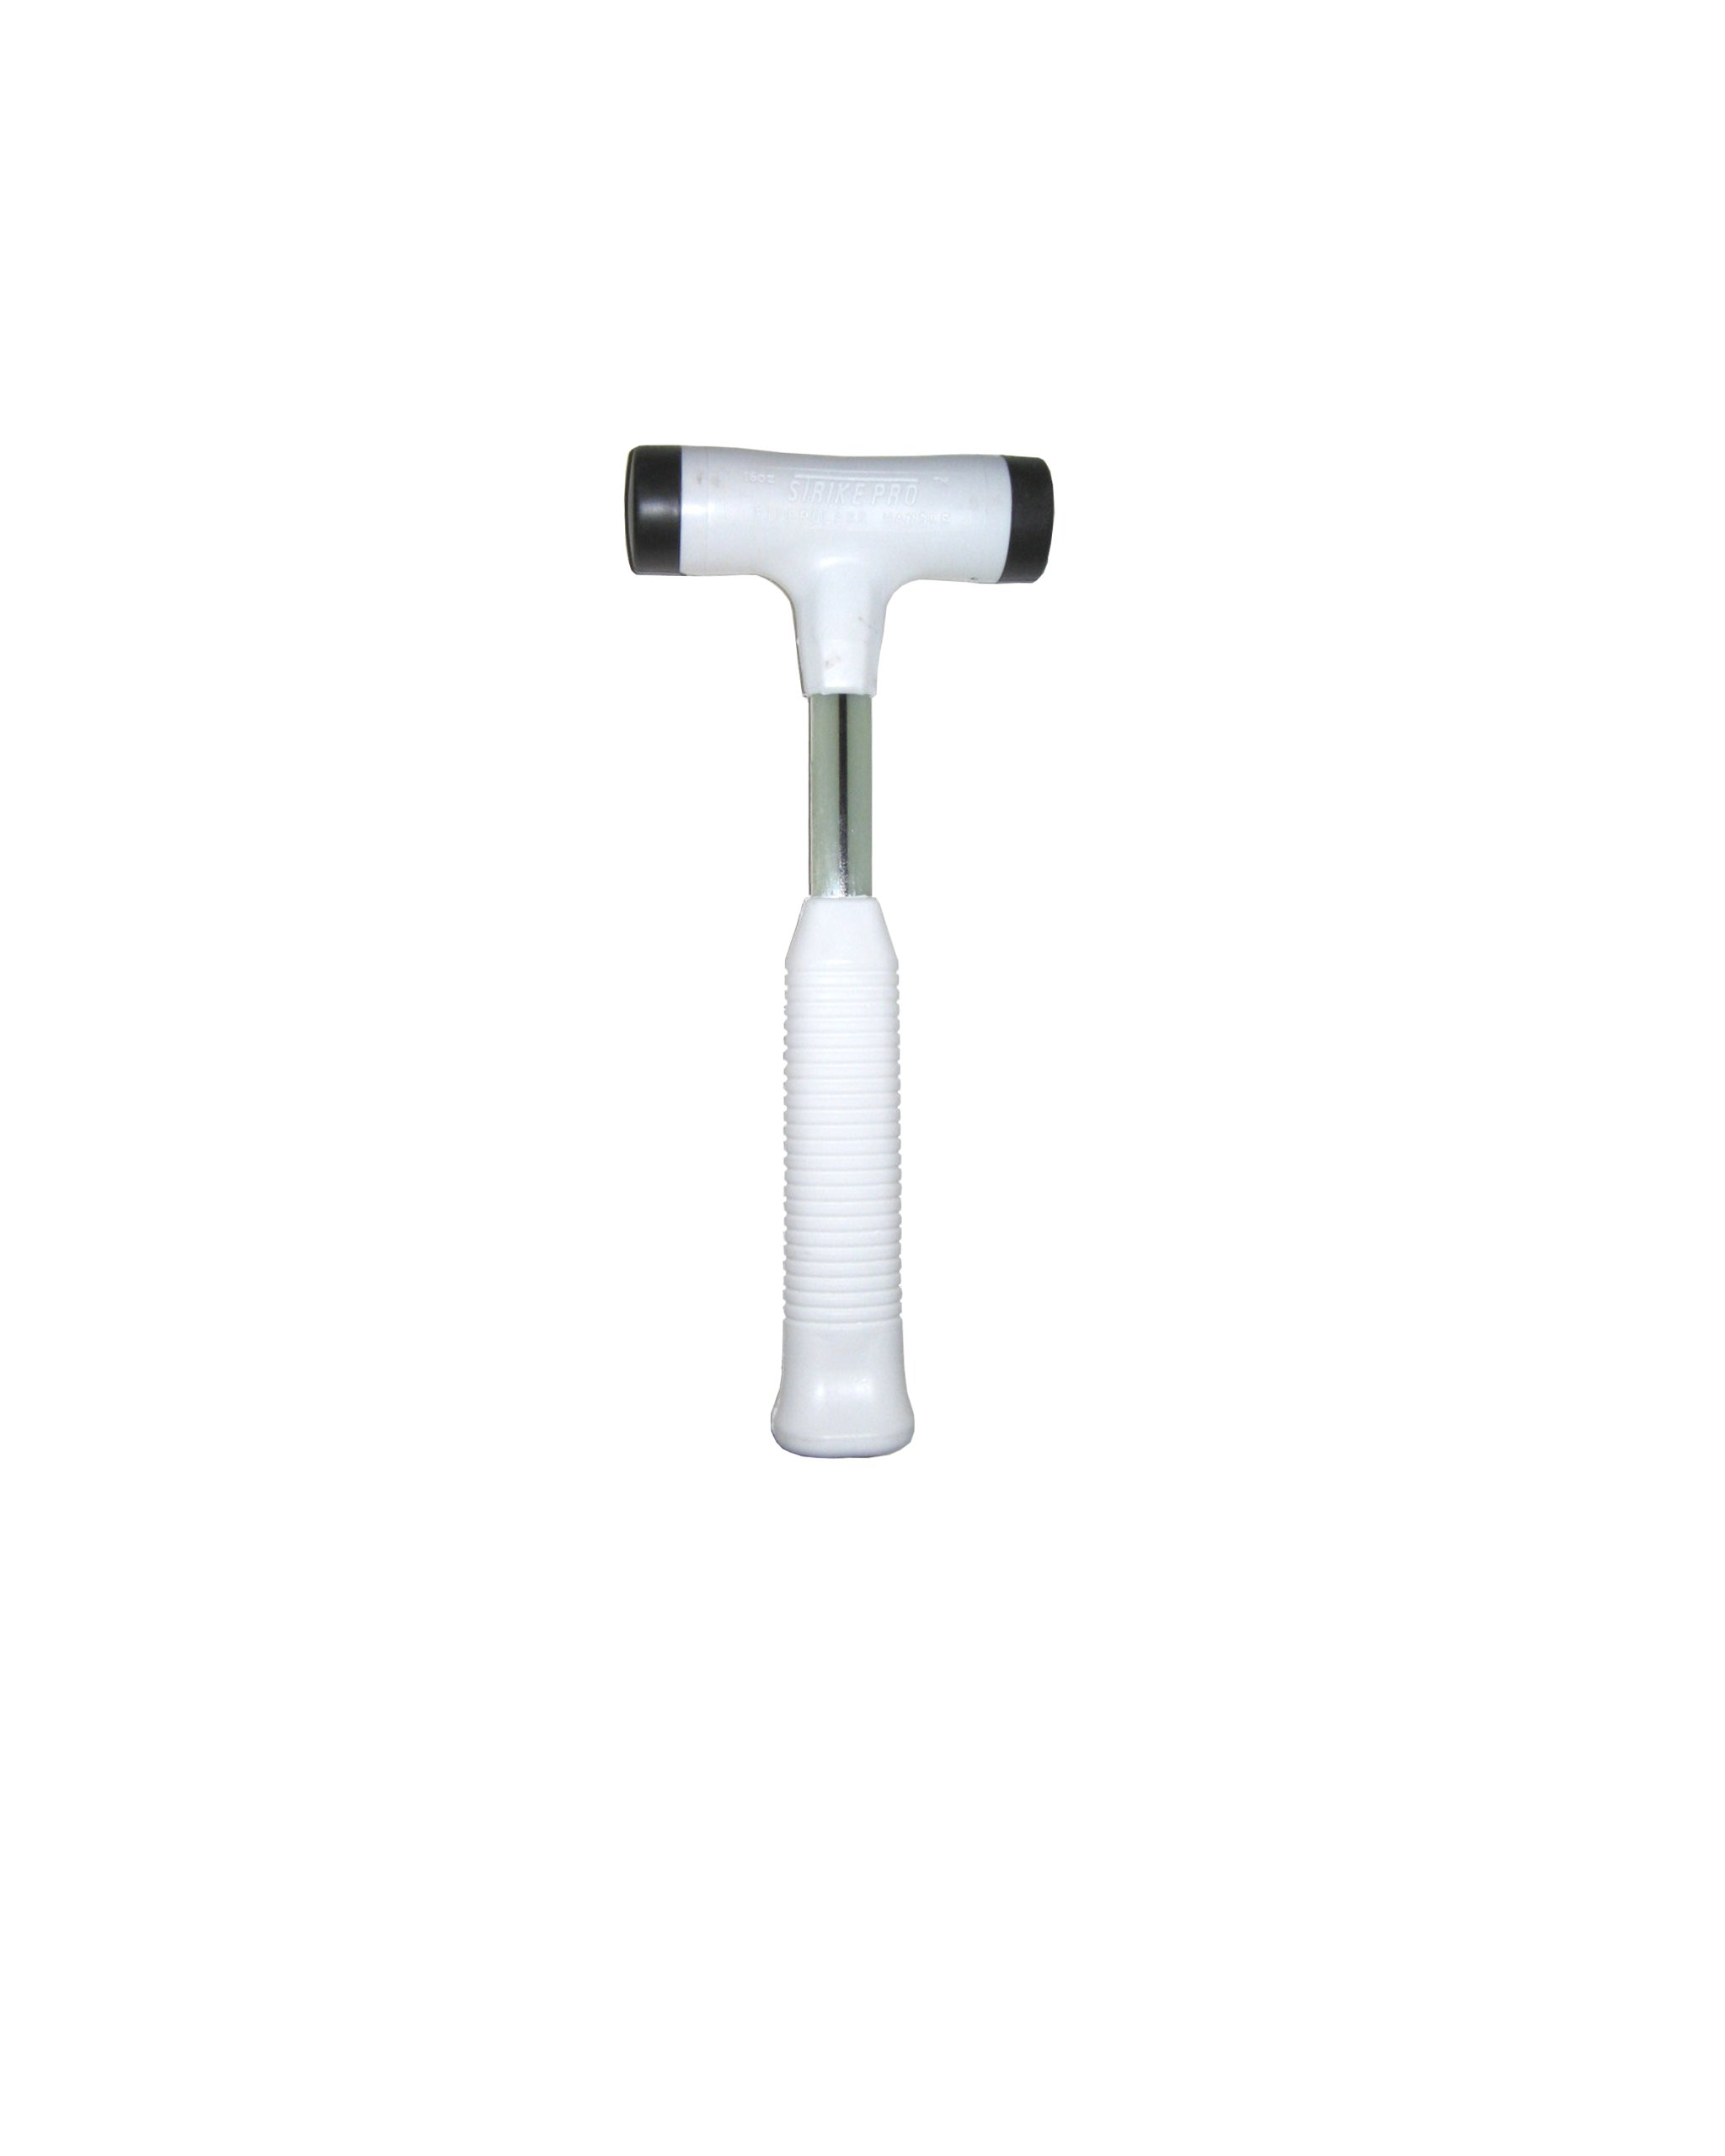 Nupla STPN24 Non-Sparking Dead Blow Strike Pro Power Drive Hammer with C Grip, 5'' Head Length, 12'' Handle Length